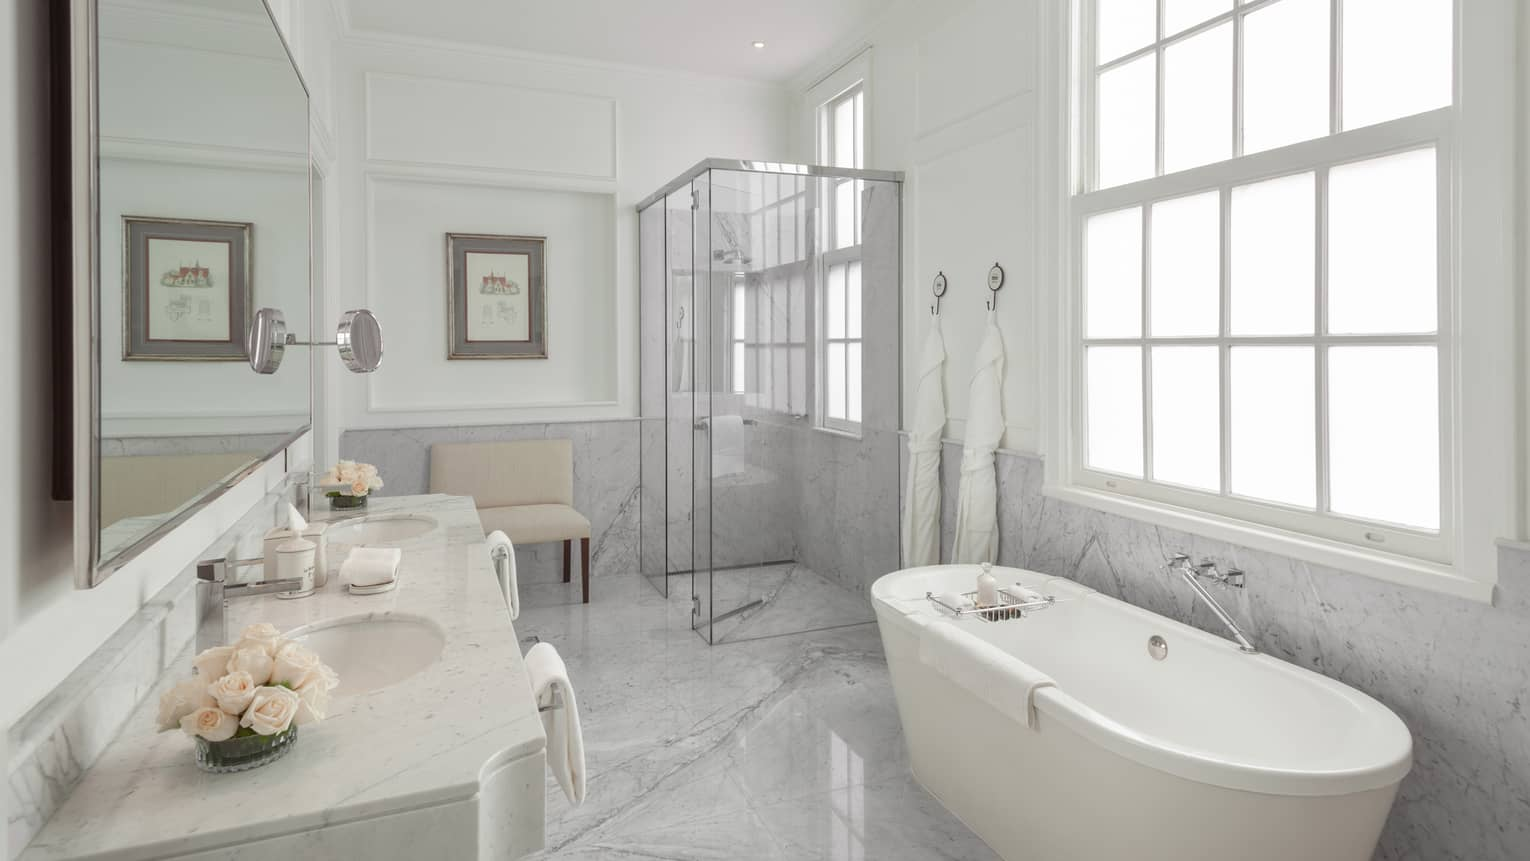 The La Mansion Bathroom is filled with a porcelain bath tub, glass shower and long mirror